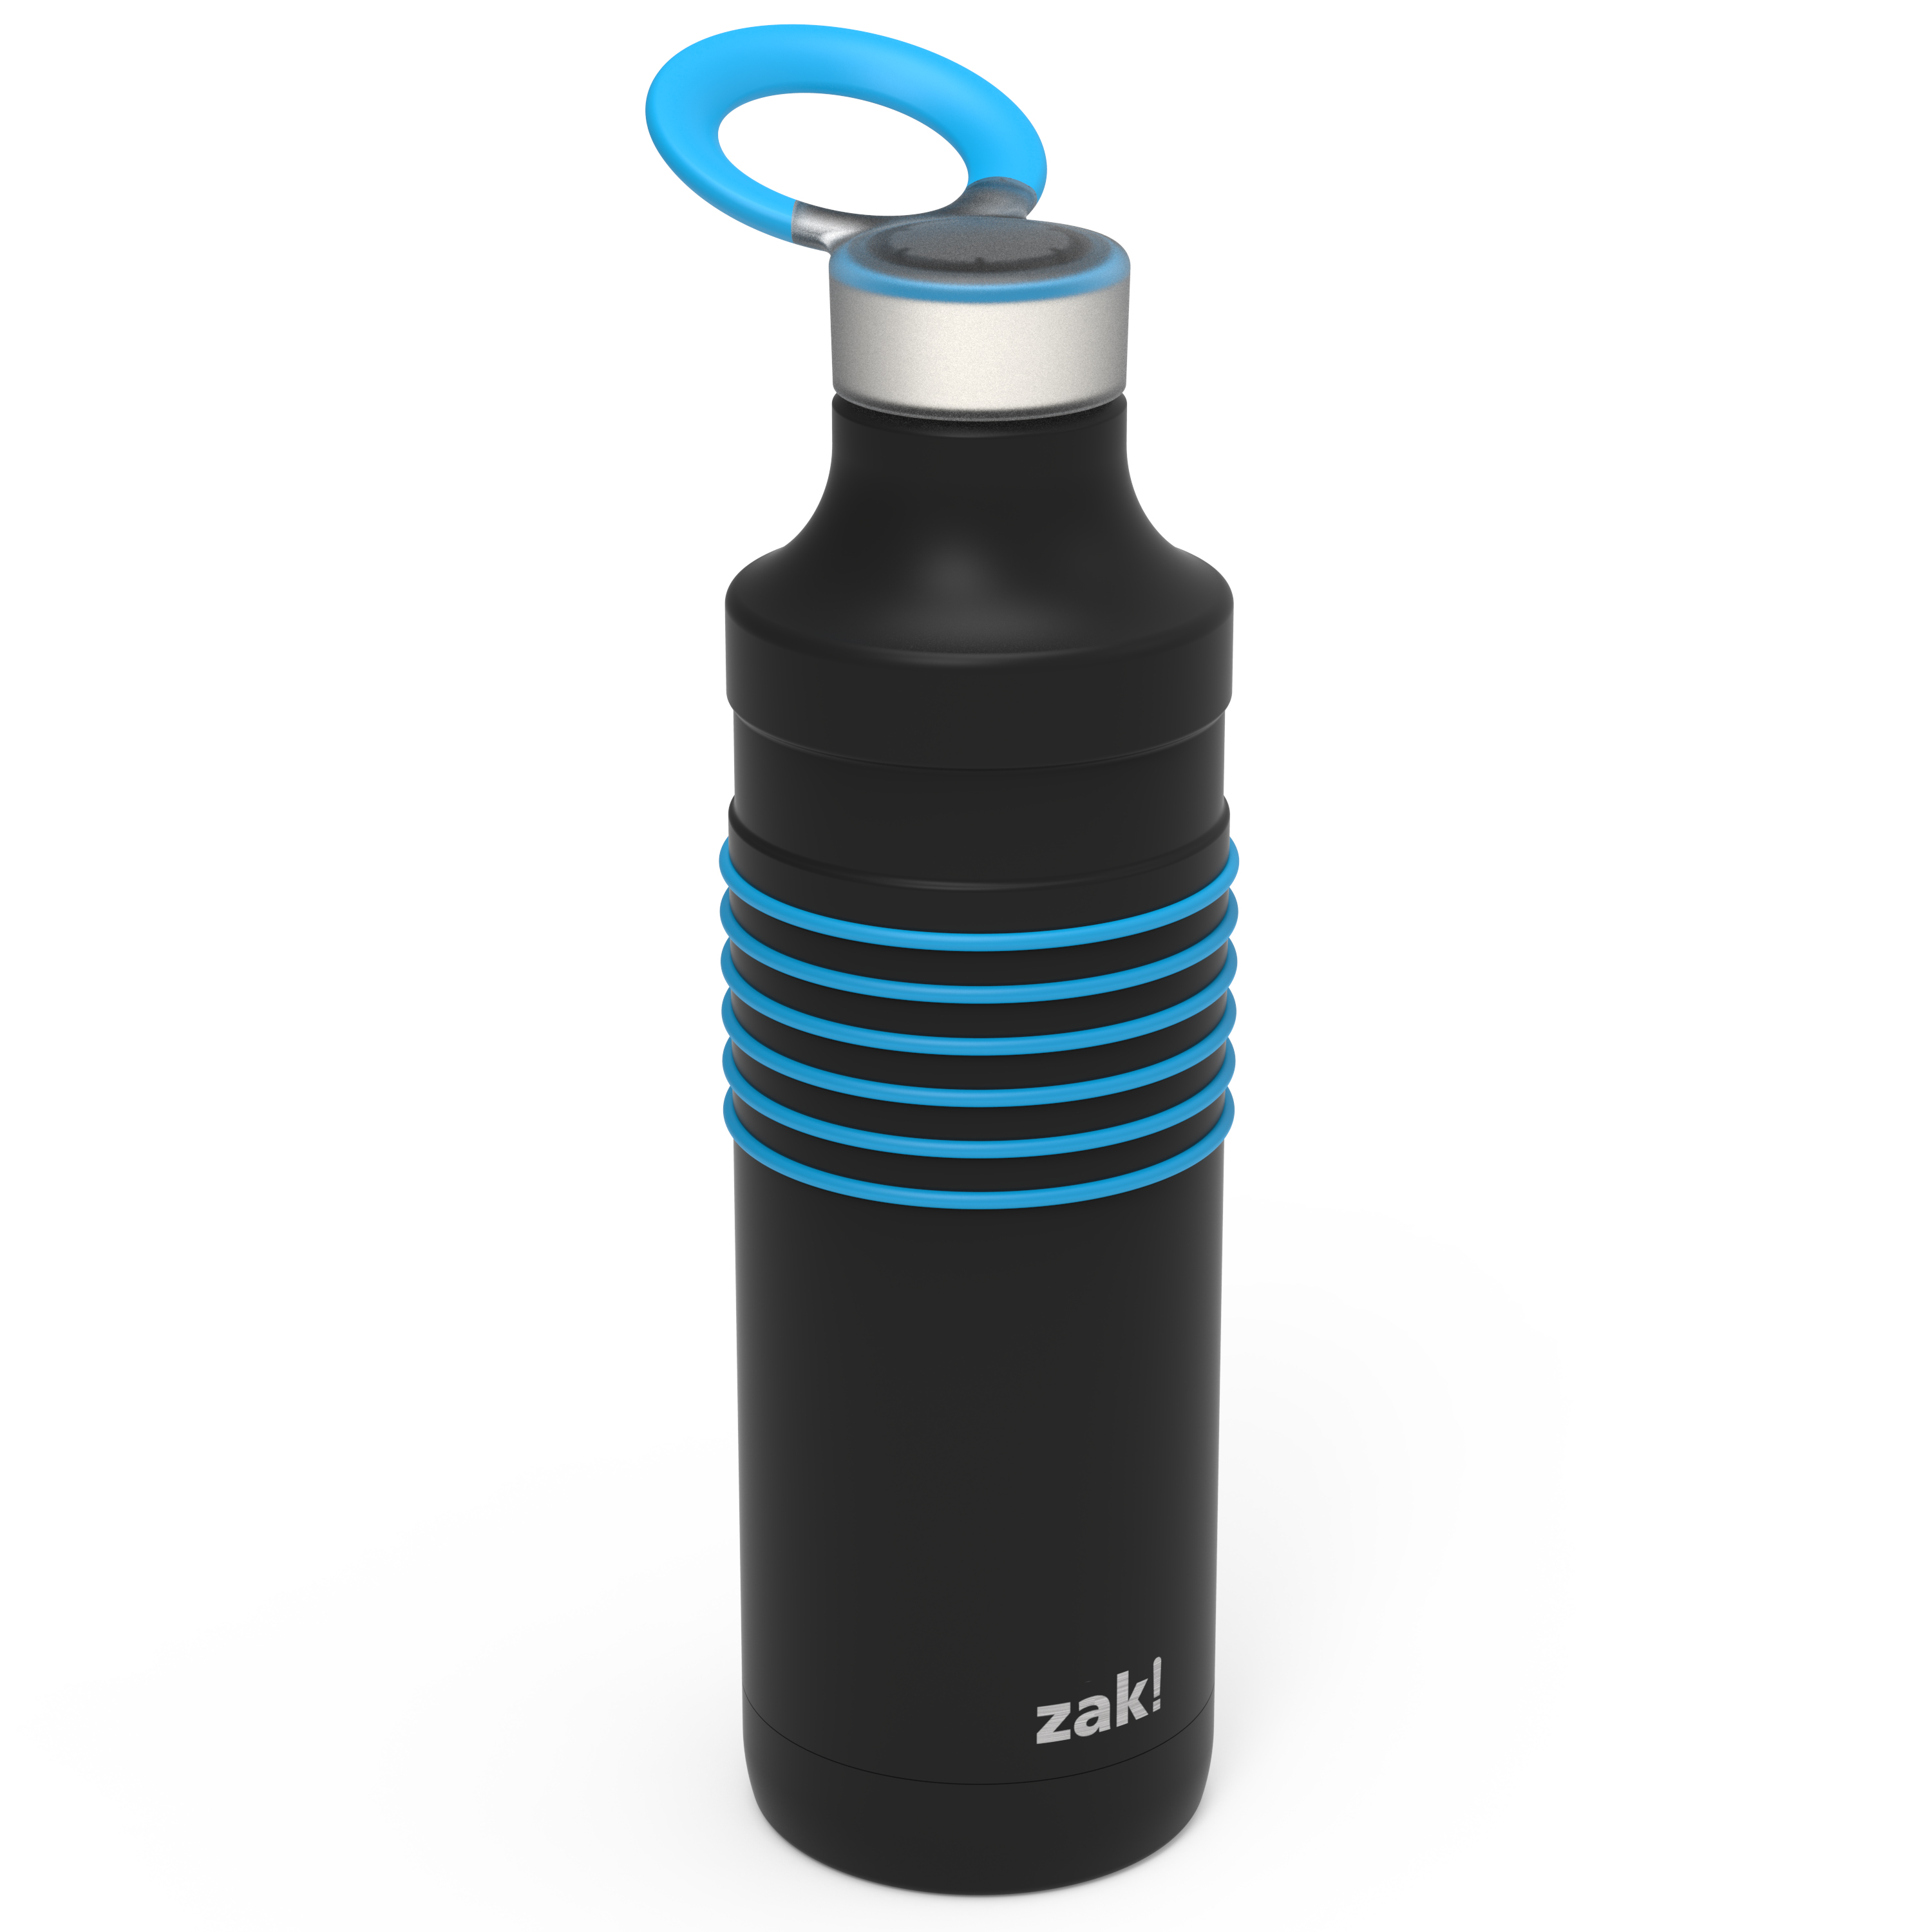 HydraTrak 22 ounce Vacuum Insulated Stainless Steel Tumbler, Black with Blue Rings slideshow image 1